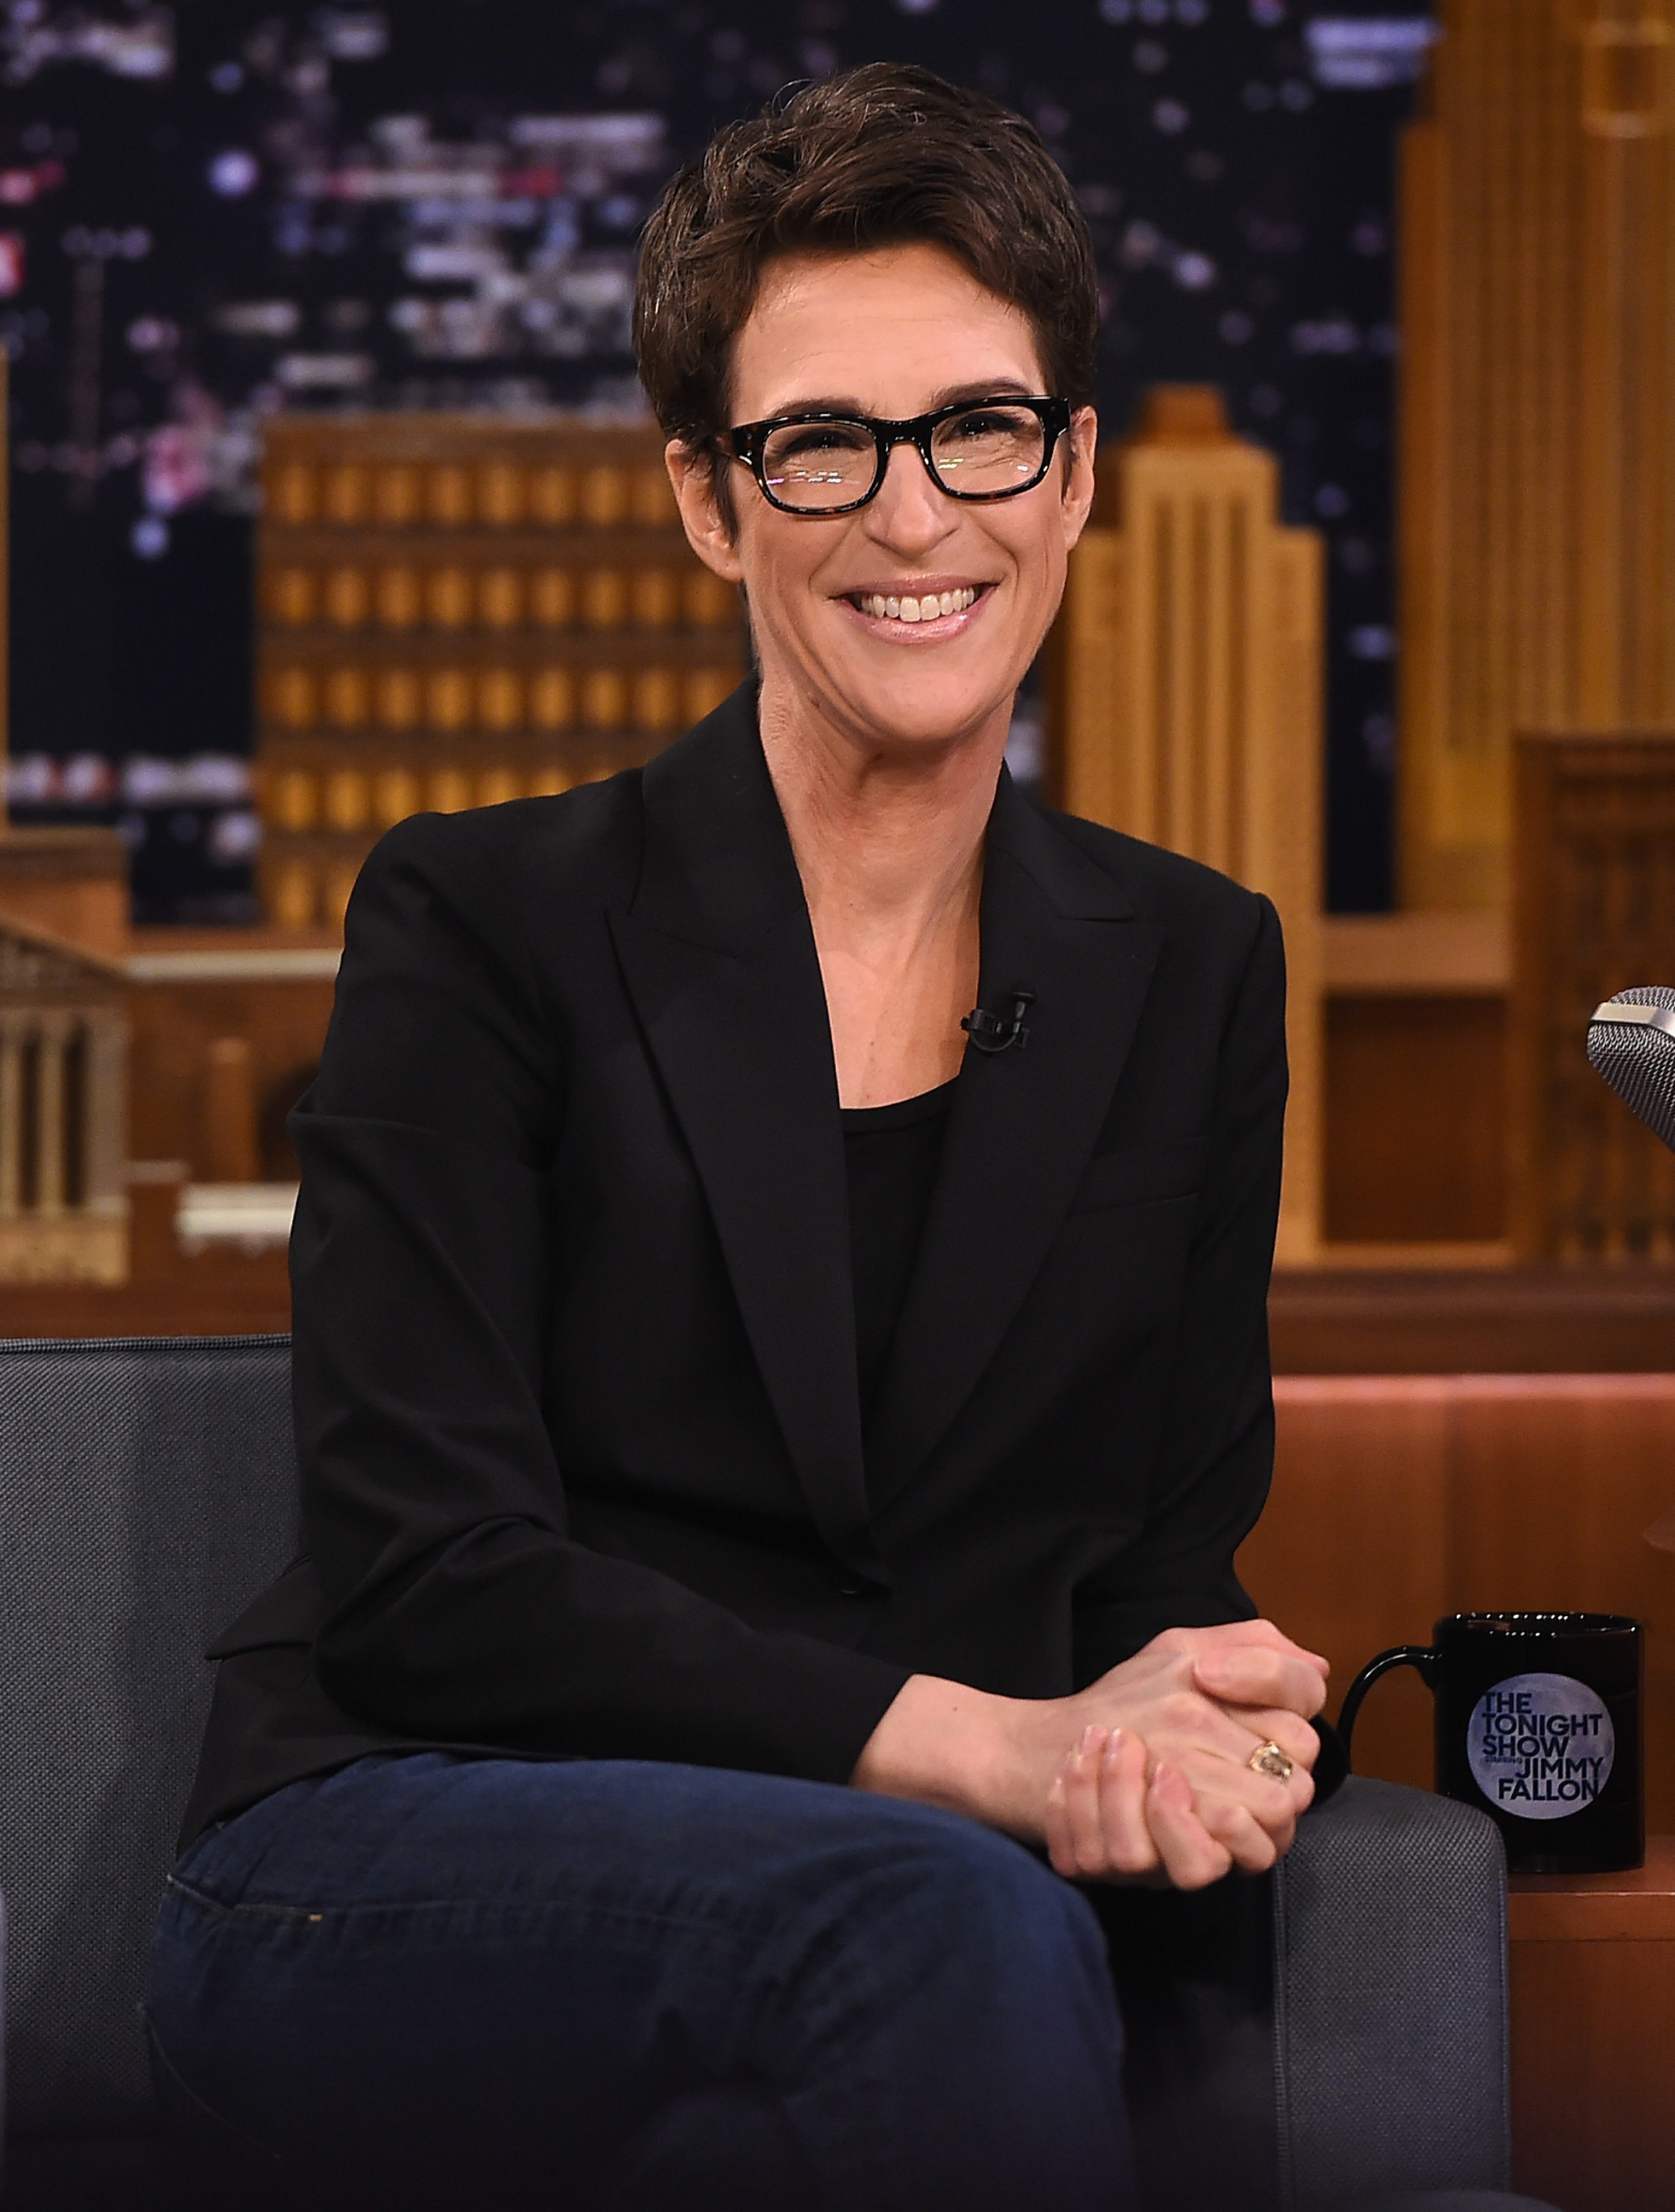 """Rachel Maddow Visits """"The Tonight Show Starring Jimmy Fallon"""" at Rockefeller Center on March 15, 2017 in New York City. (Photo by Theo Wargo/Getty Images for NBC)"""